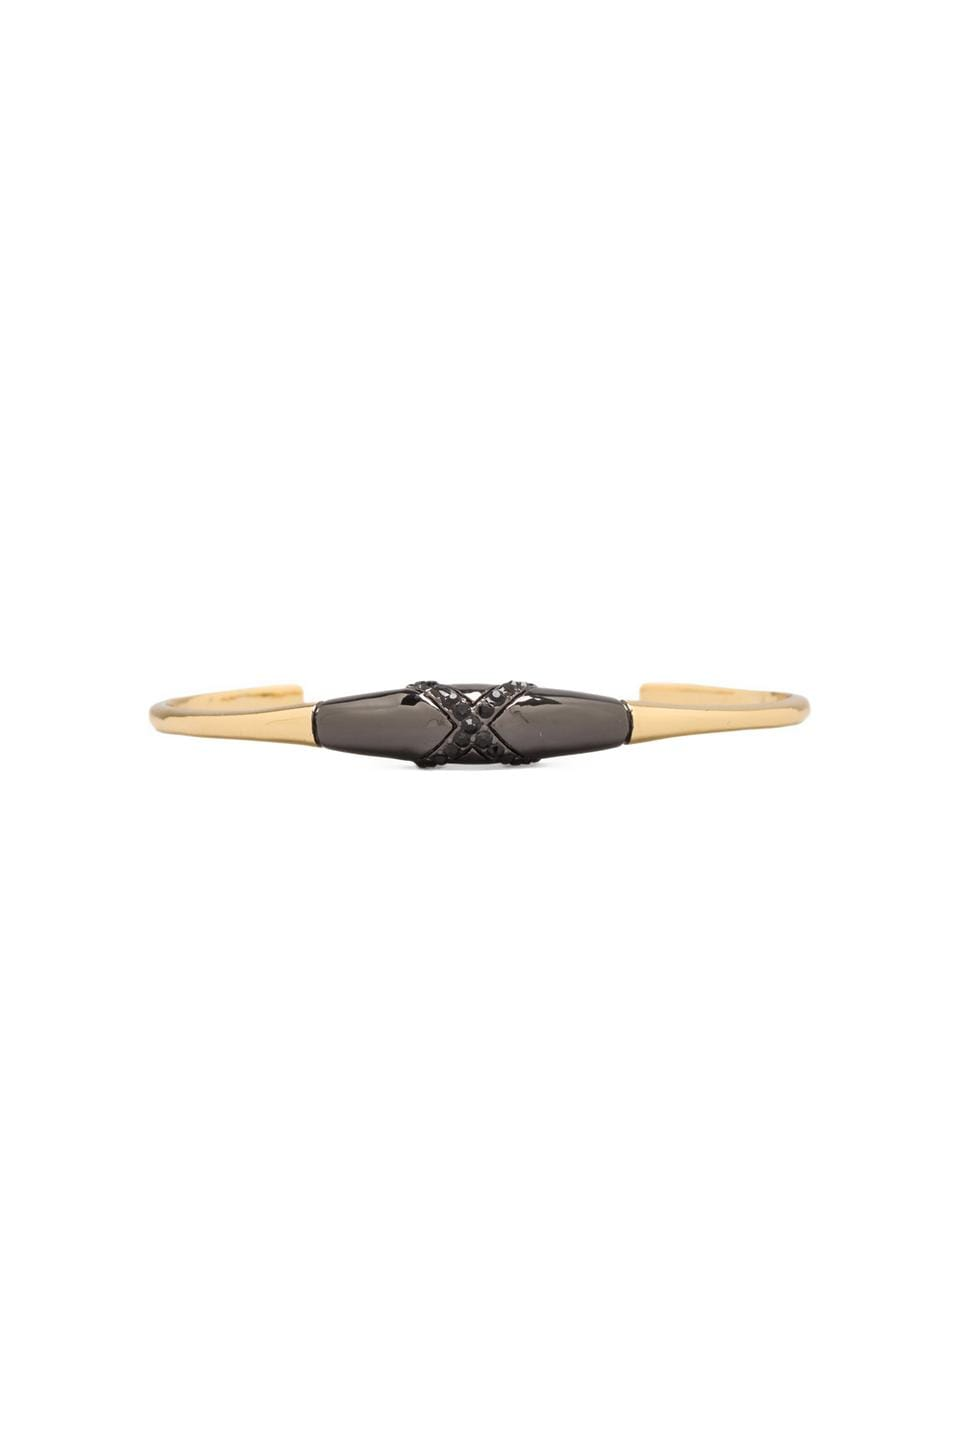 House of Harlow 1960 House of Harlow Obsidian Feather Cuff in Two Tone